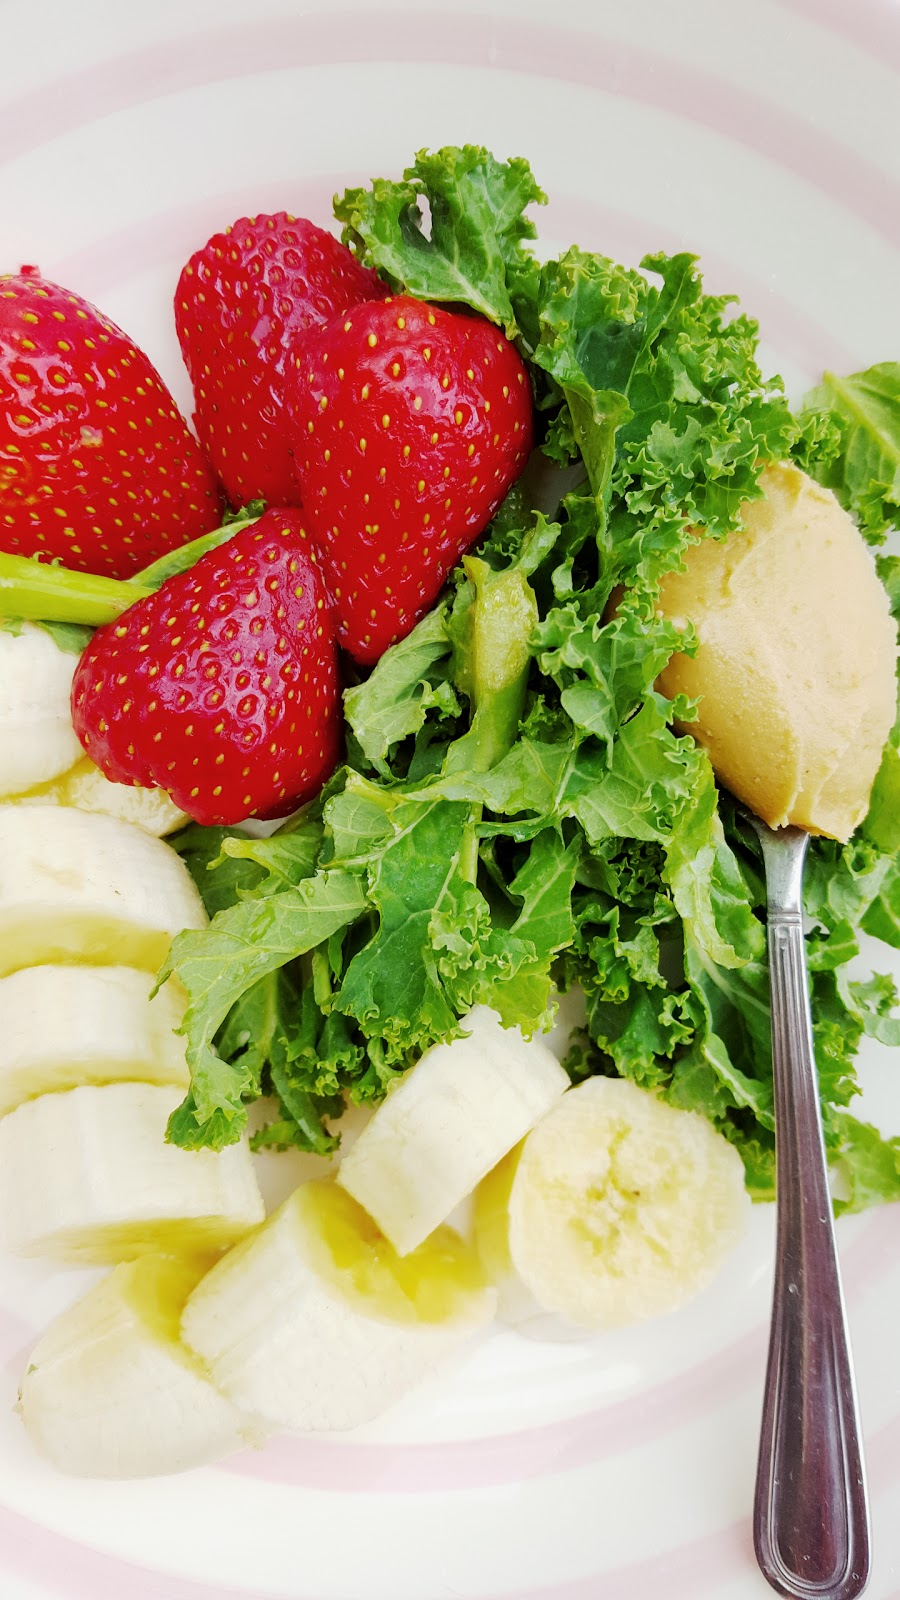 Kale And Fruit Smoothie Recipe To Try Out Today